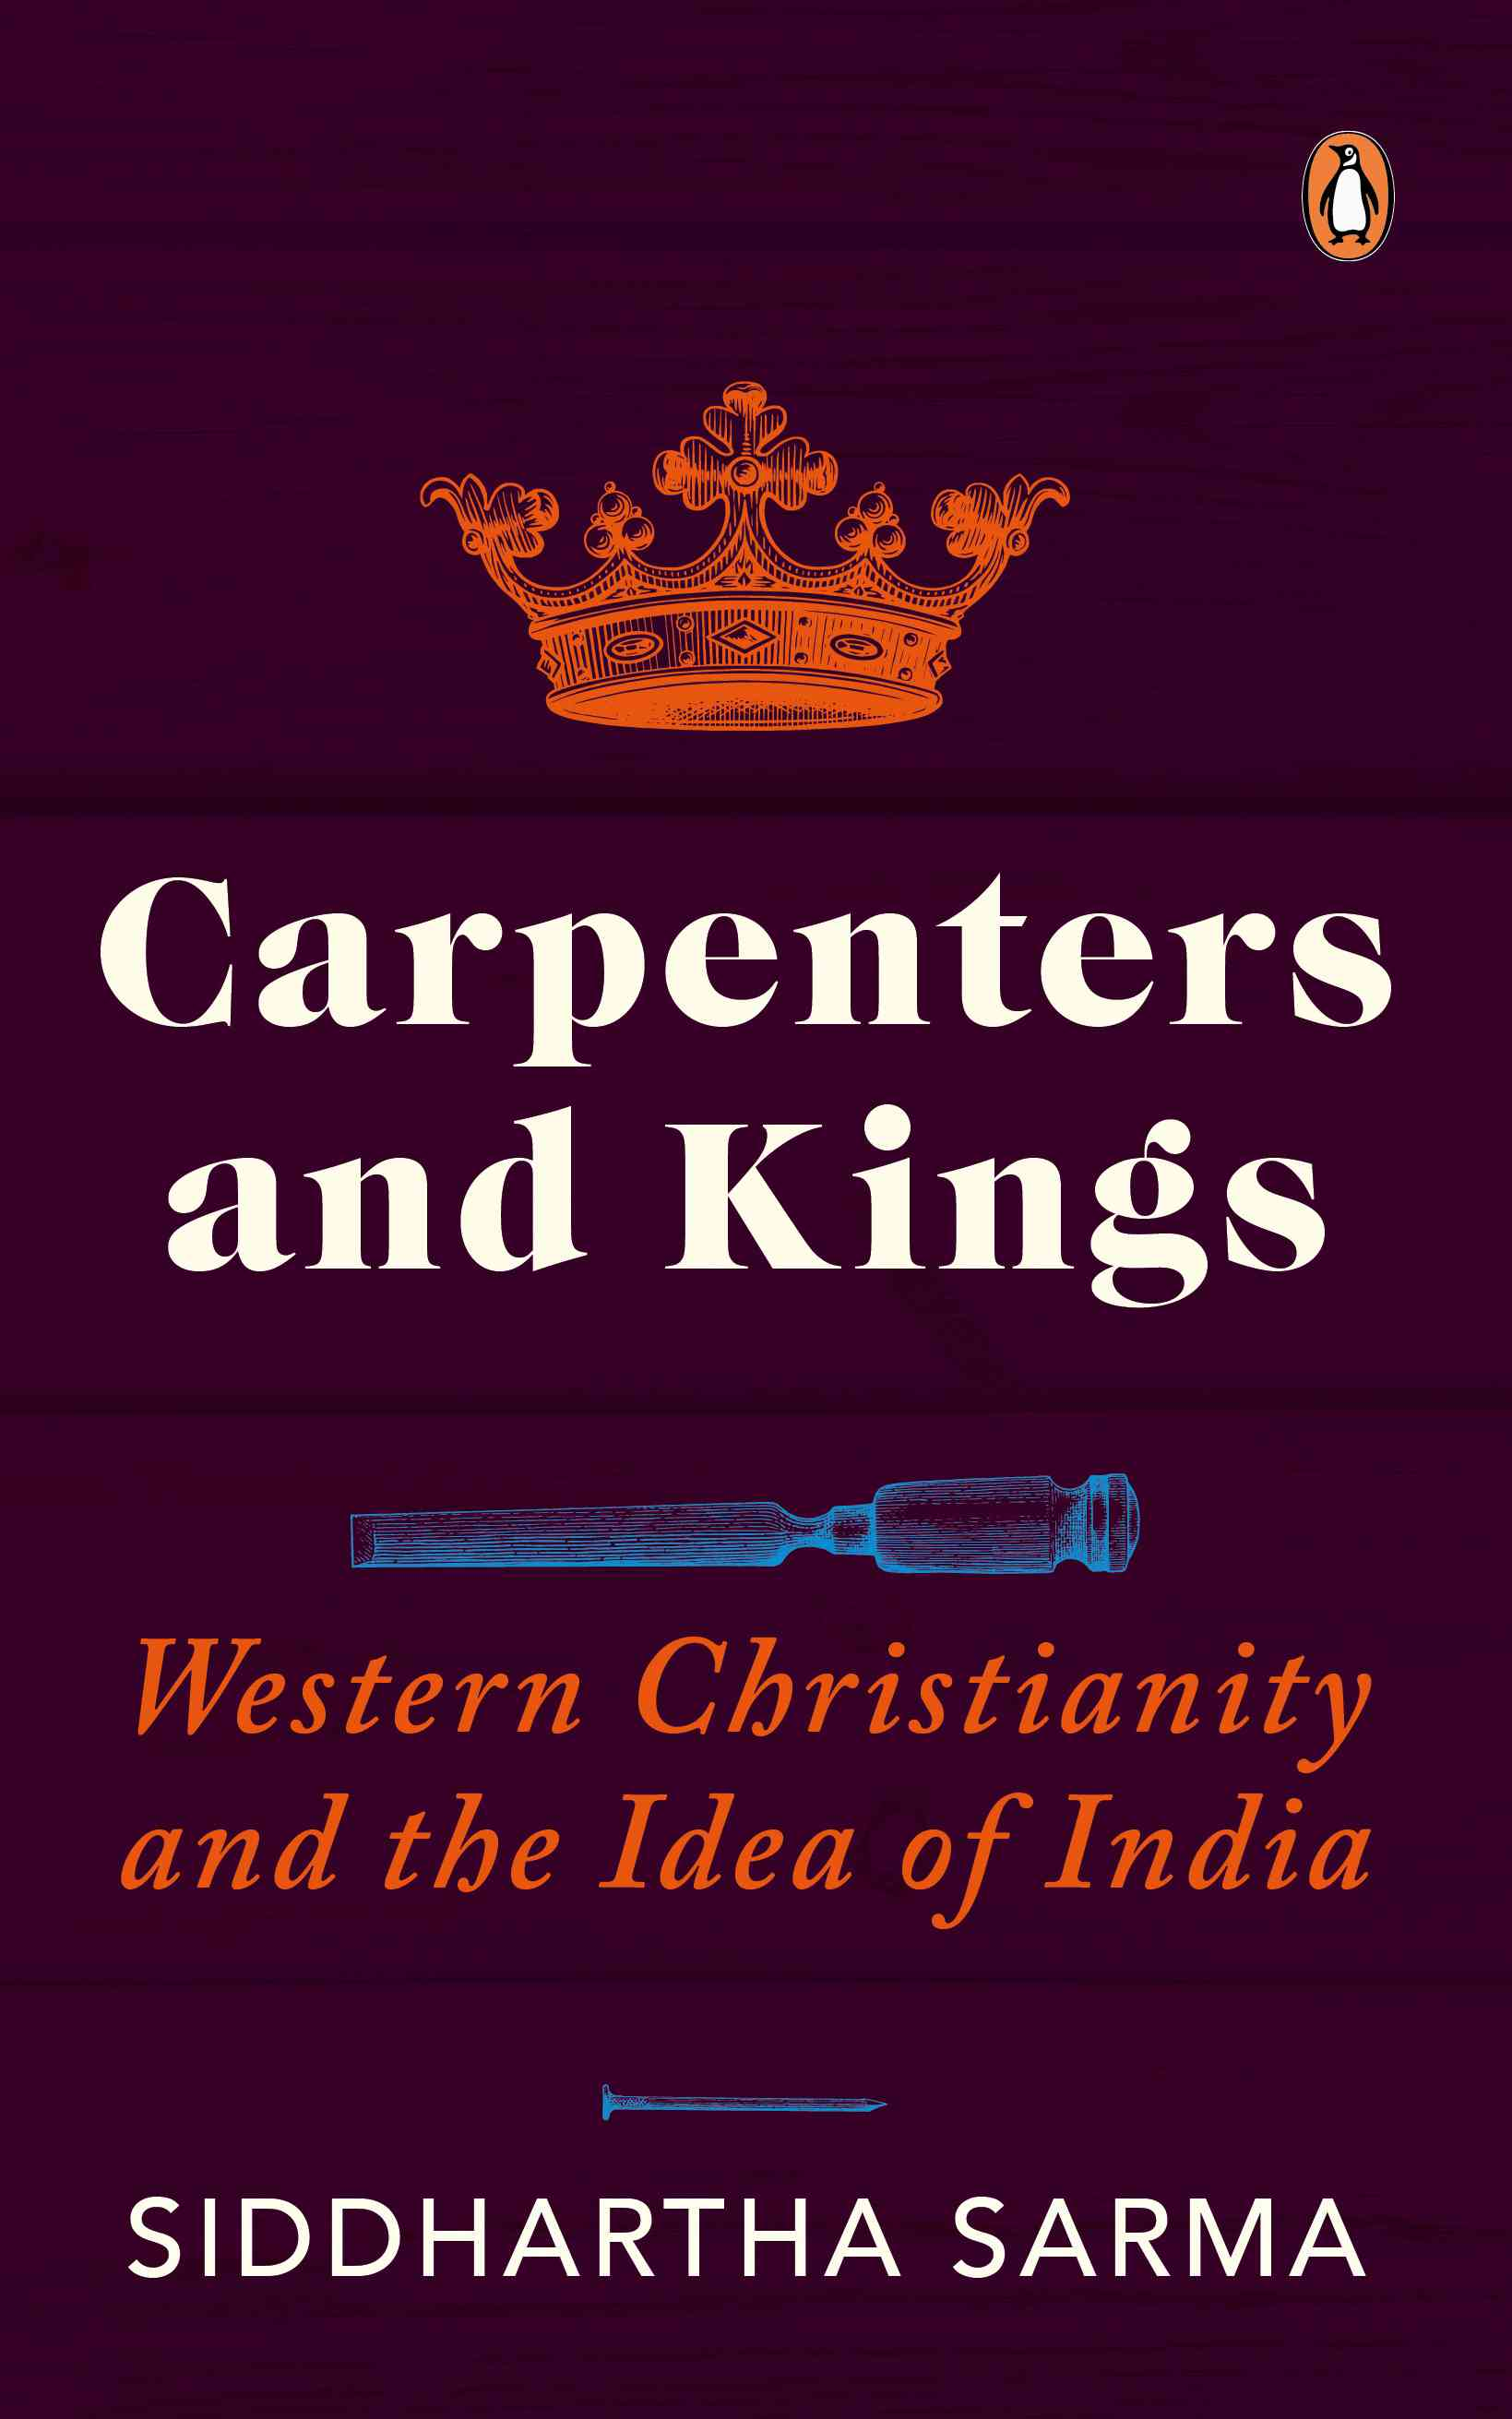 Carpenters and Kings